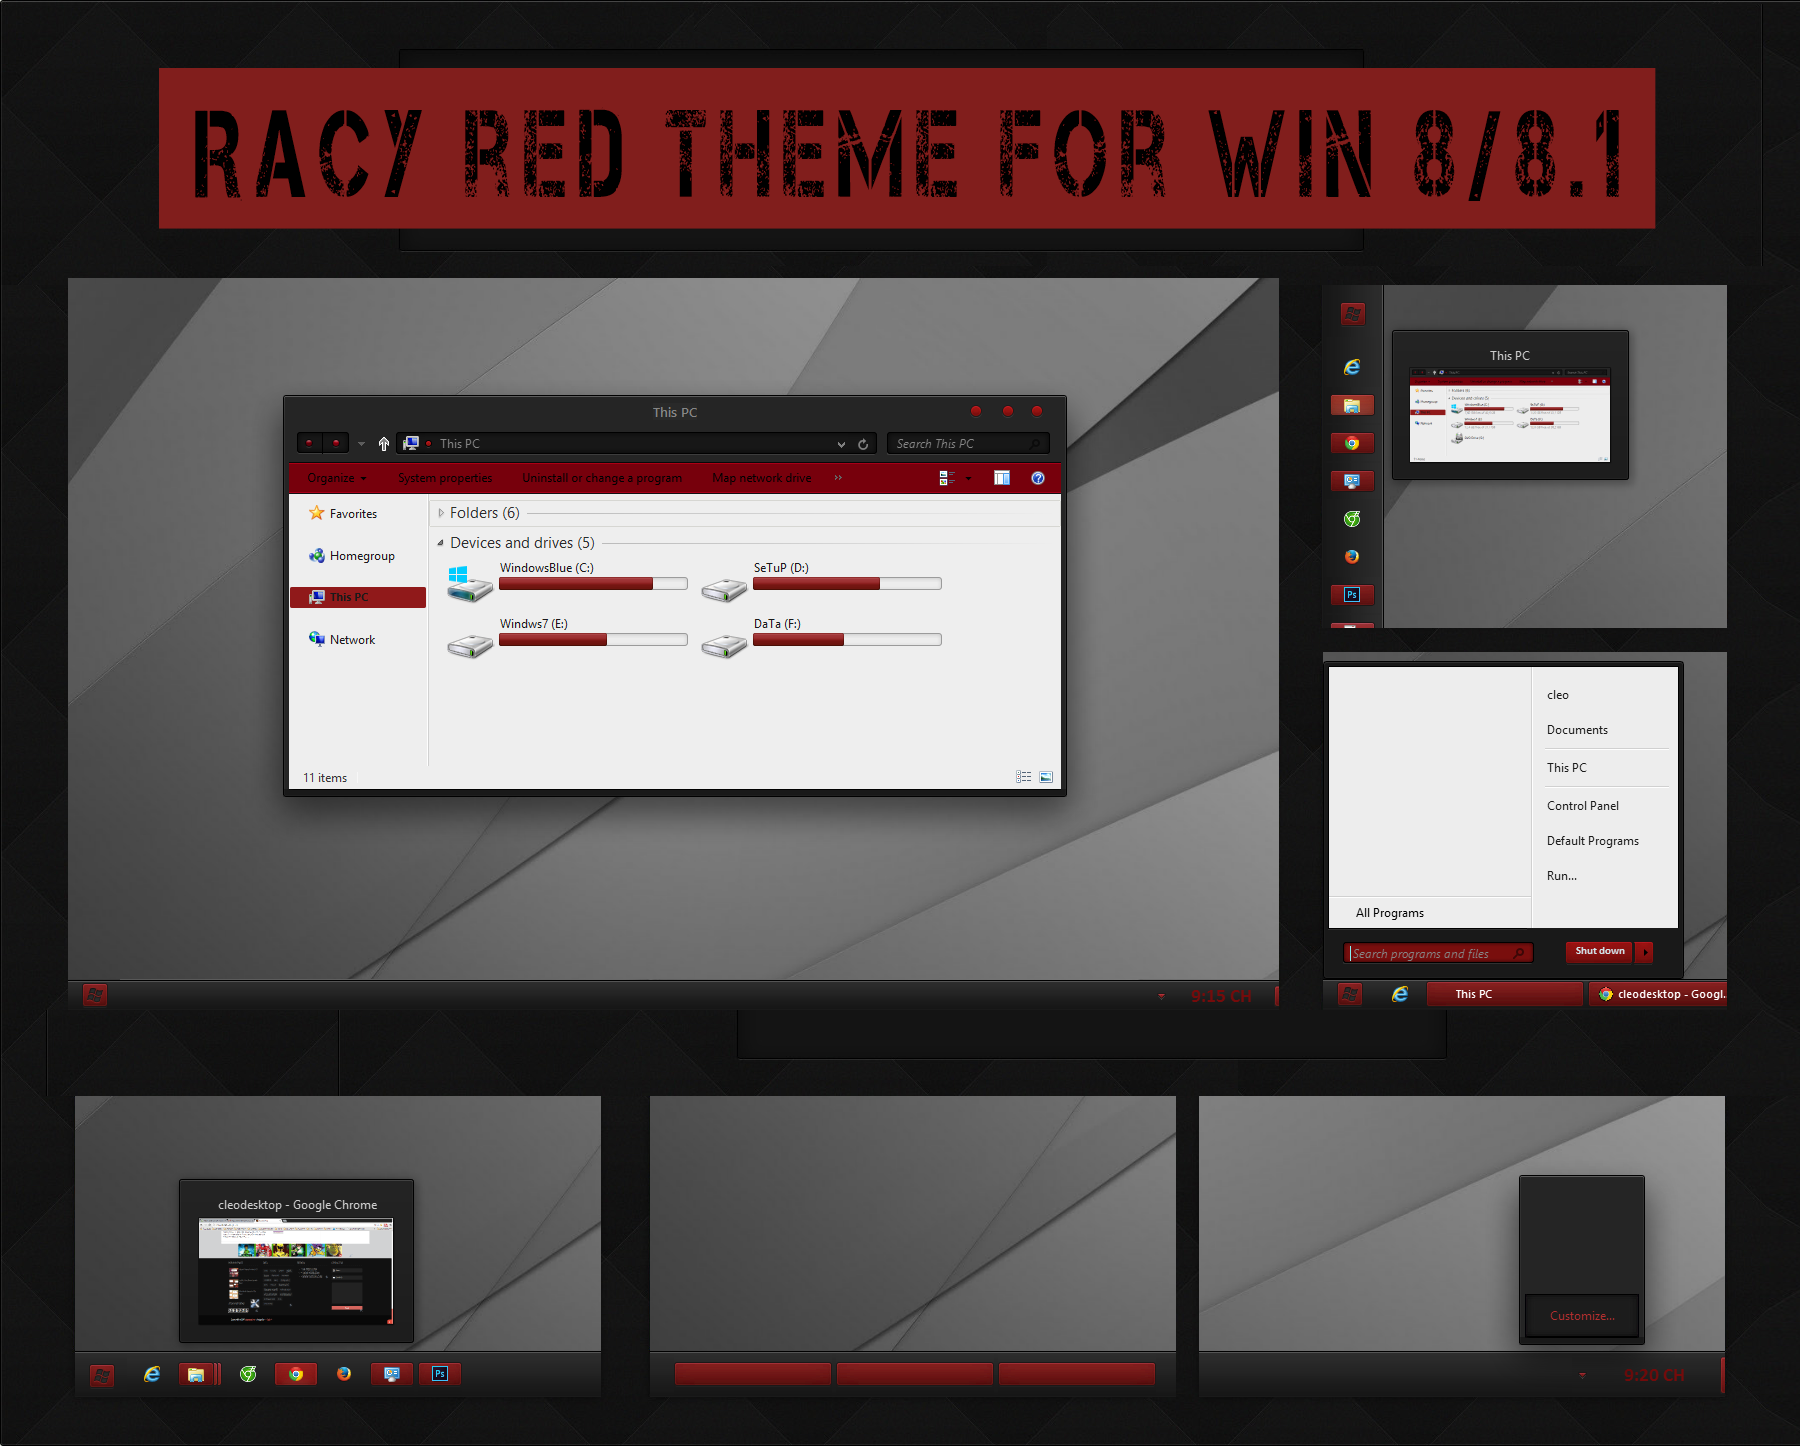 Racy Red Theme for Win 8 /8.1 by cu88